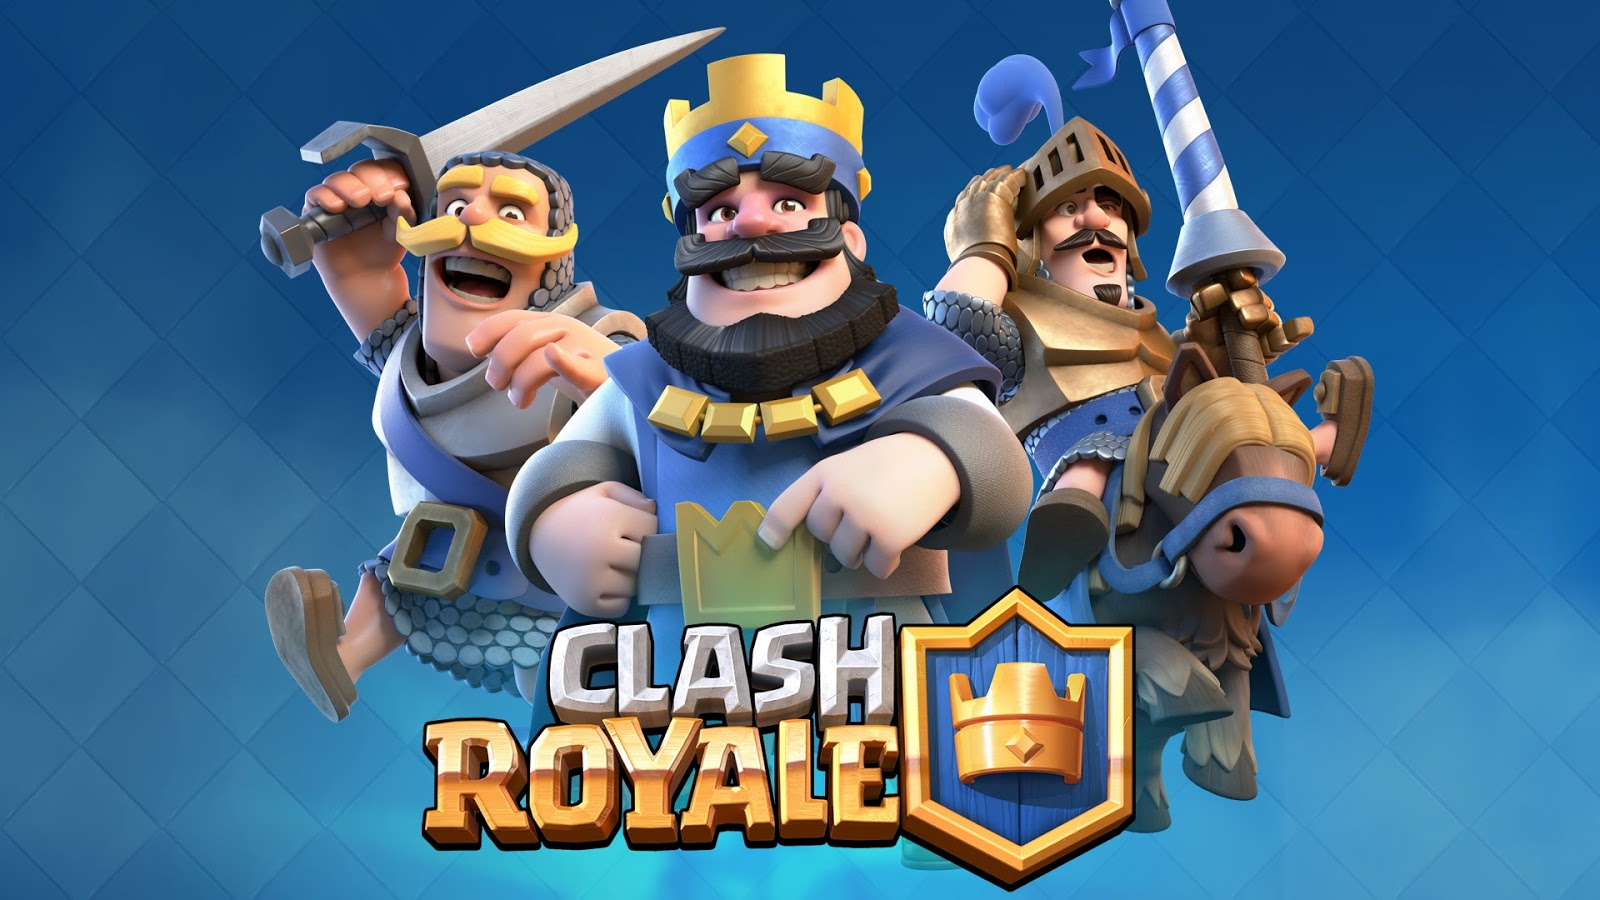 Clash Royale Hack - for Android and IOS (with image) · androidhacks ...